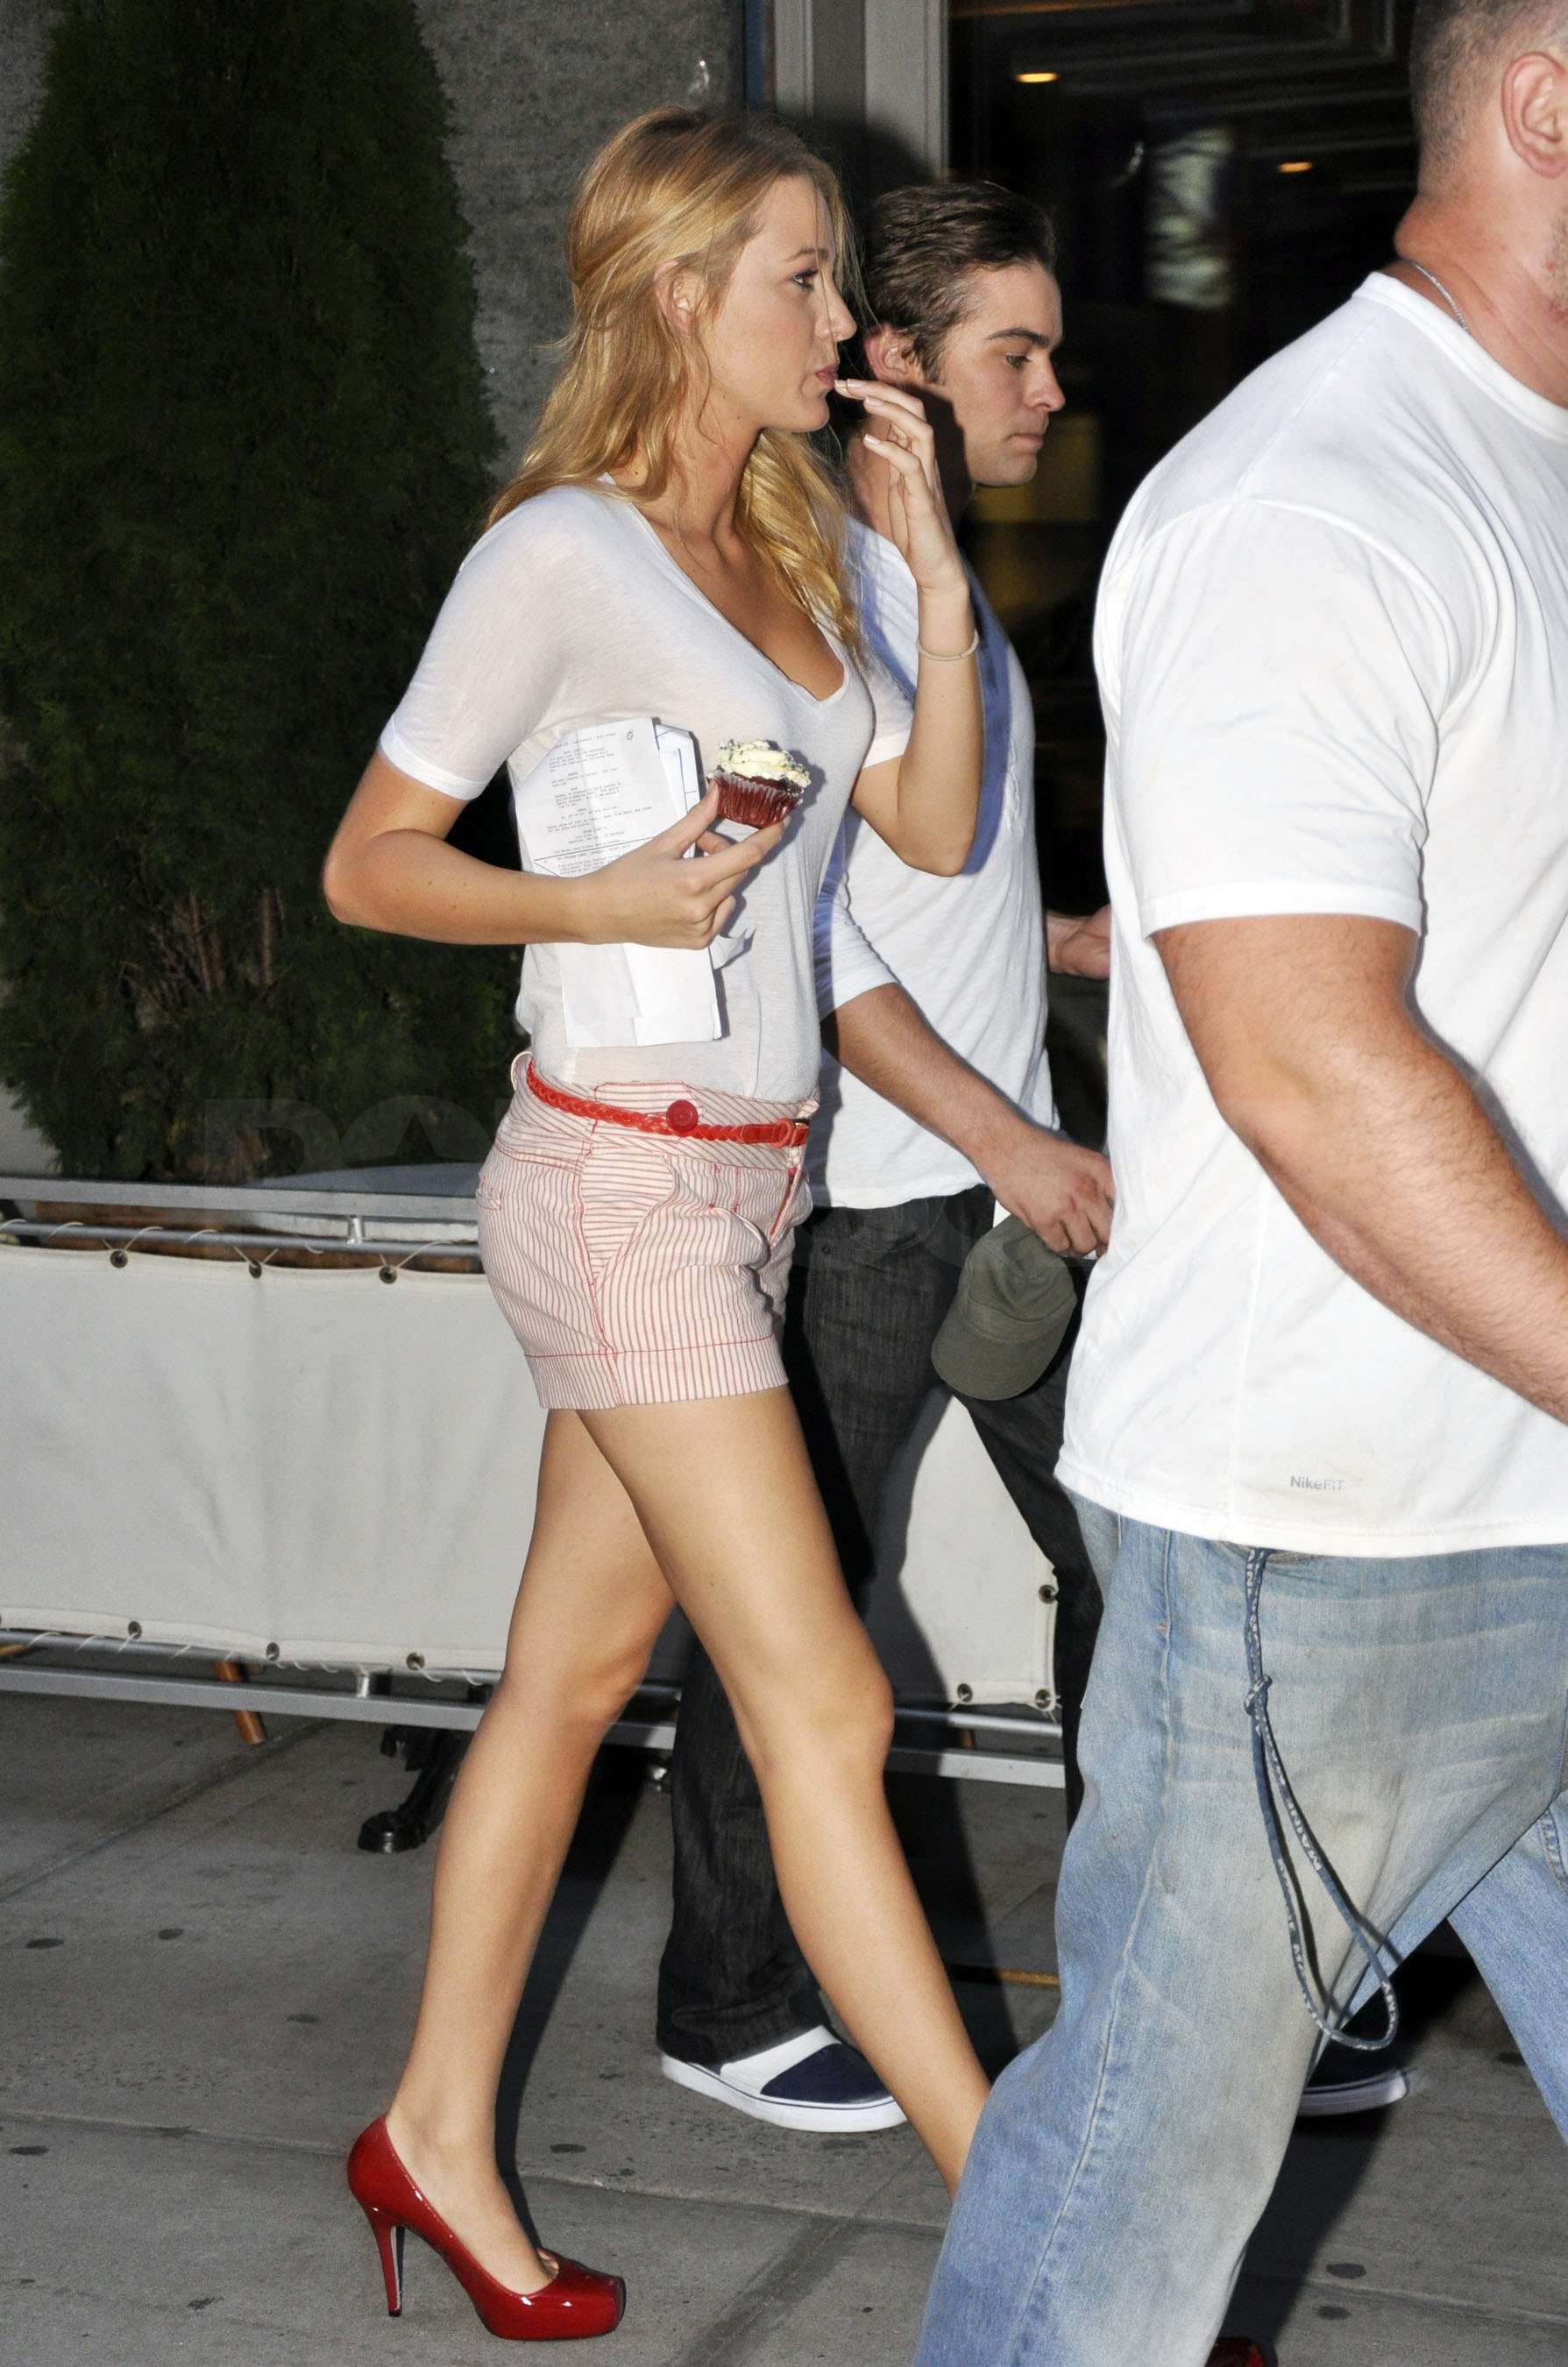 Pics Photos - Hilary Duff Weight And Hilary Duff Weight